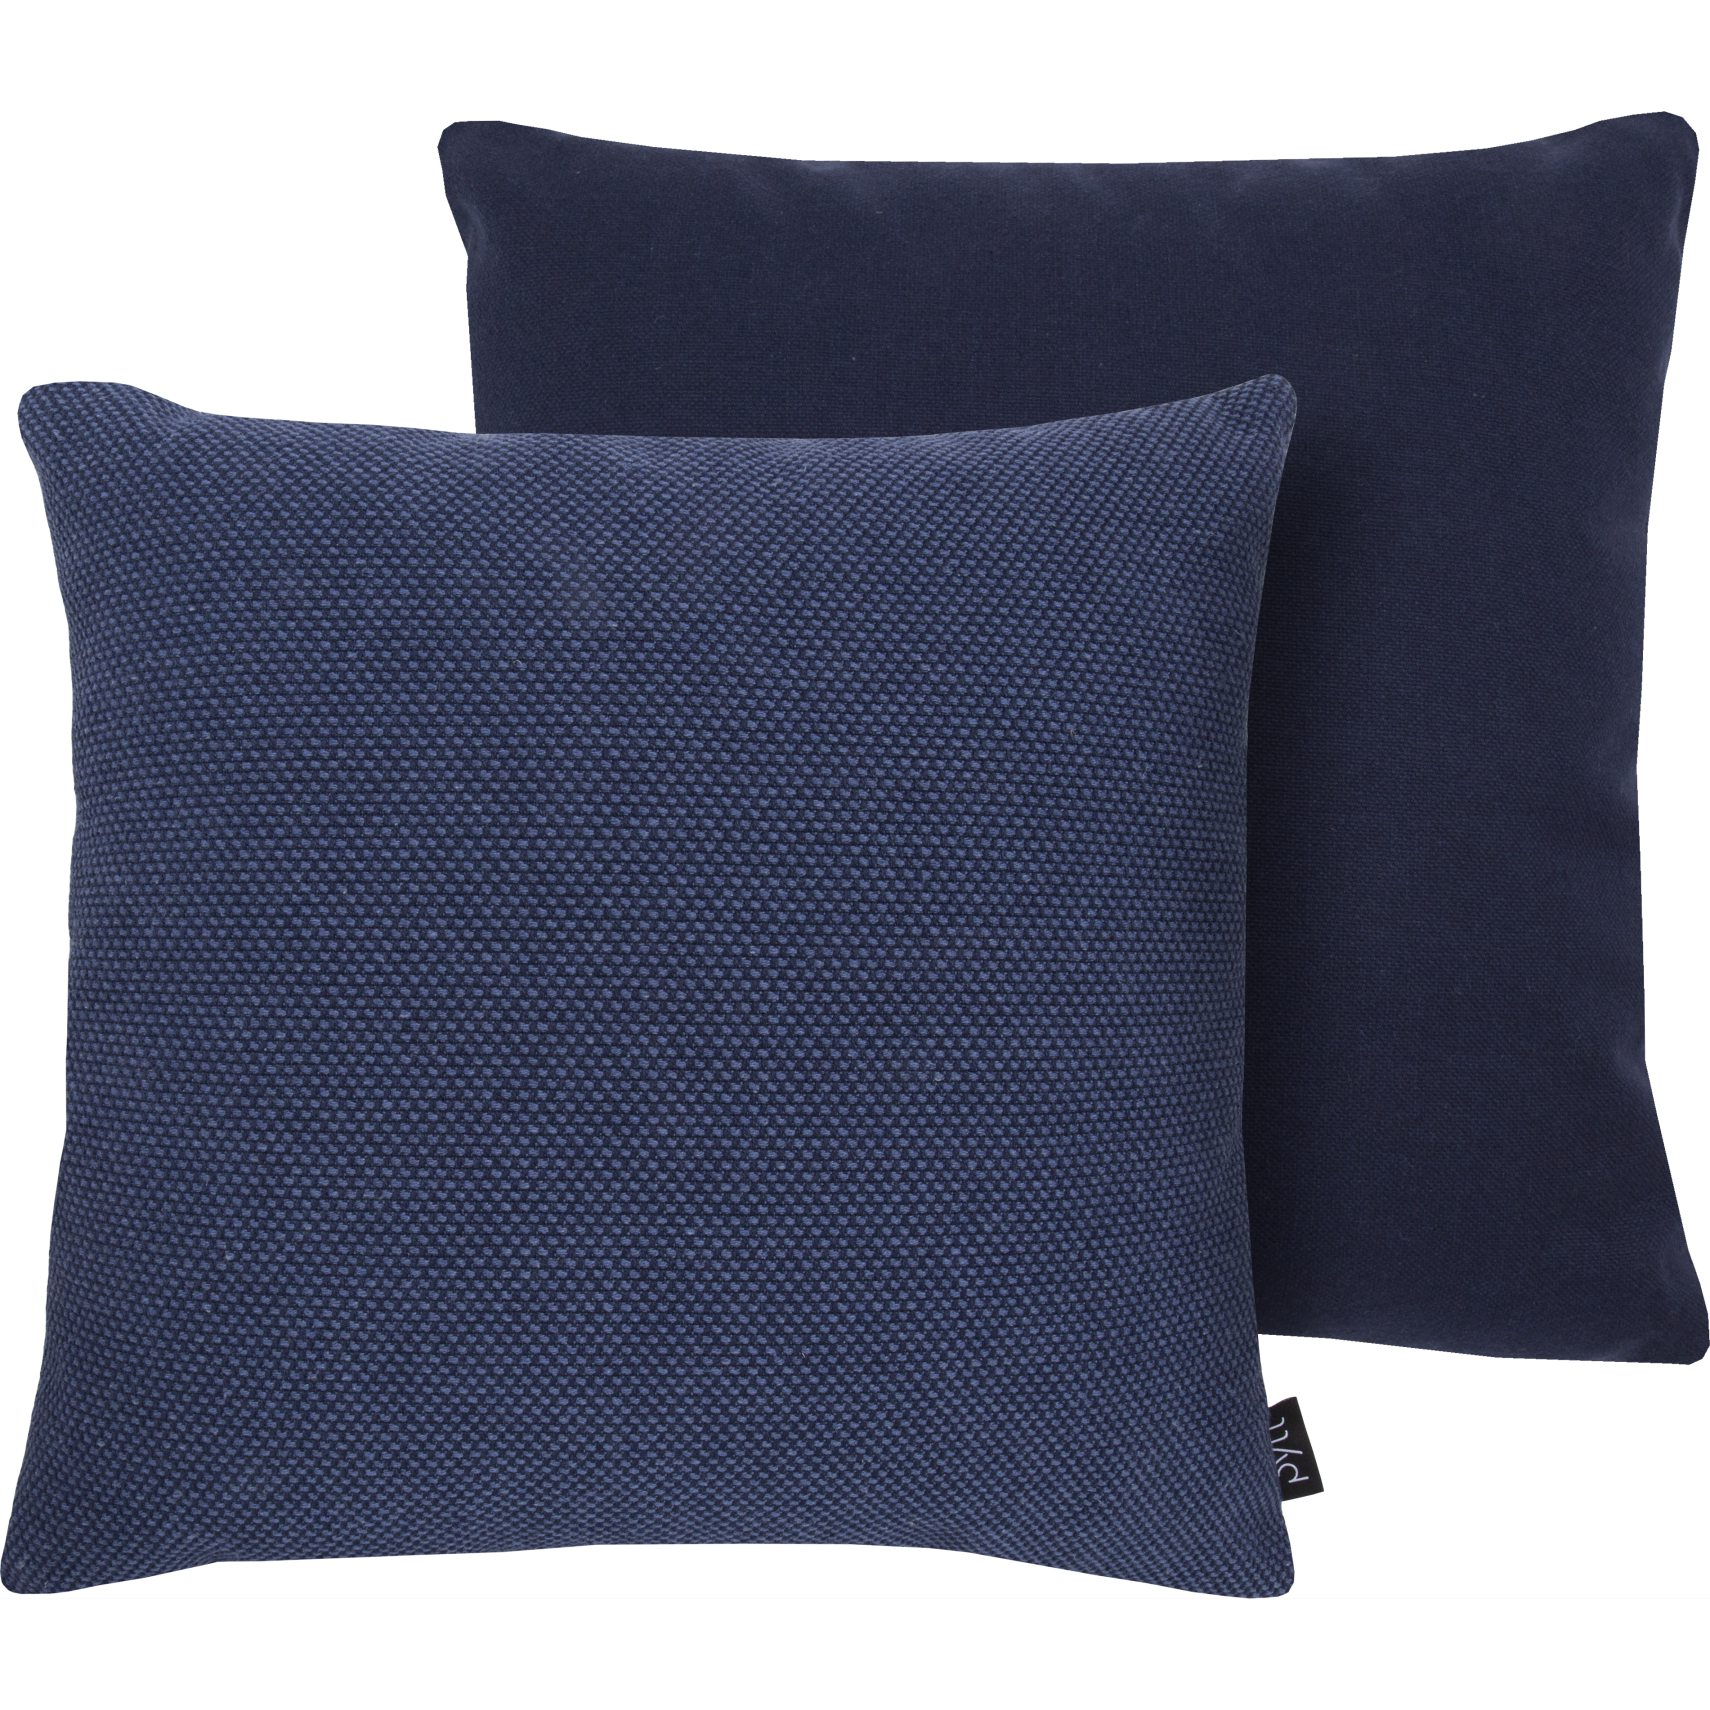 PYTT Square Pude 45 x 45 cm - Insignia blue/colony blue genbrugsbomuld